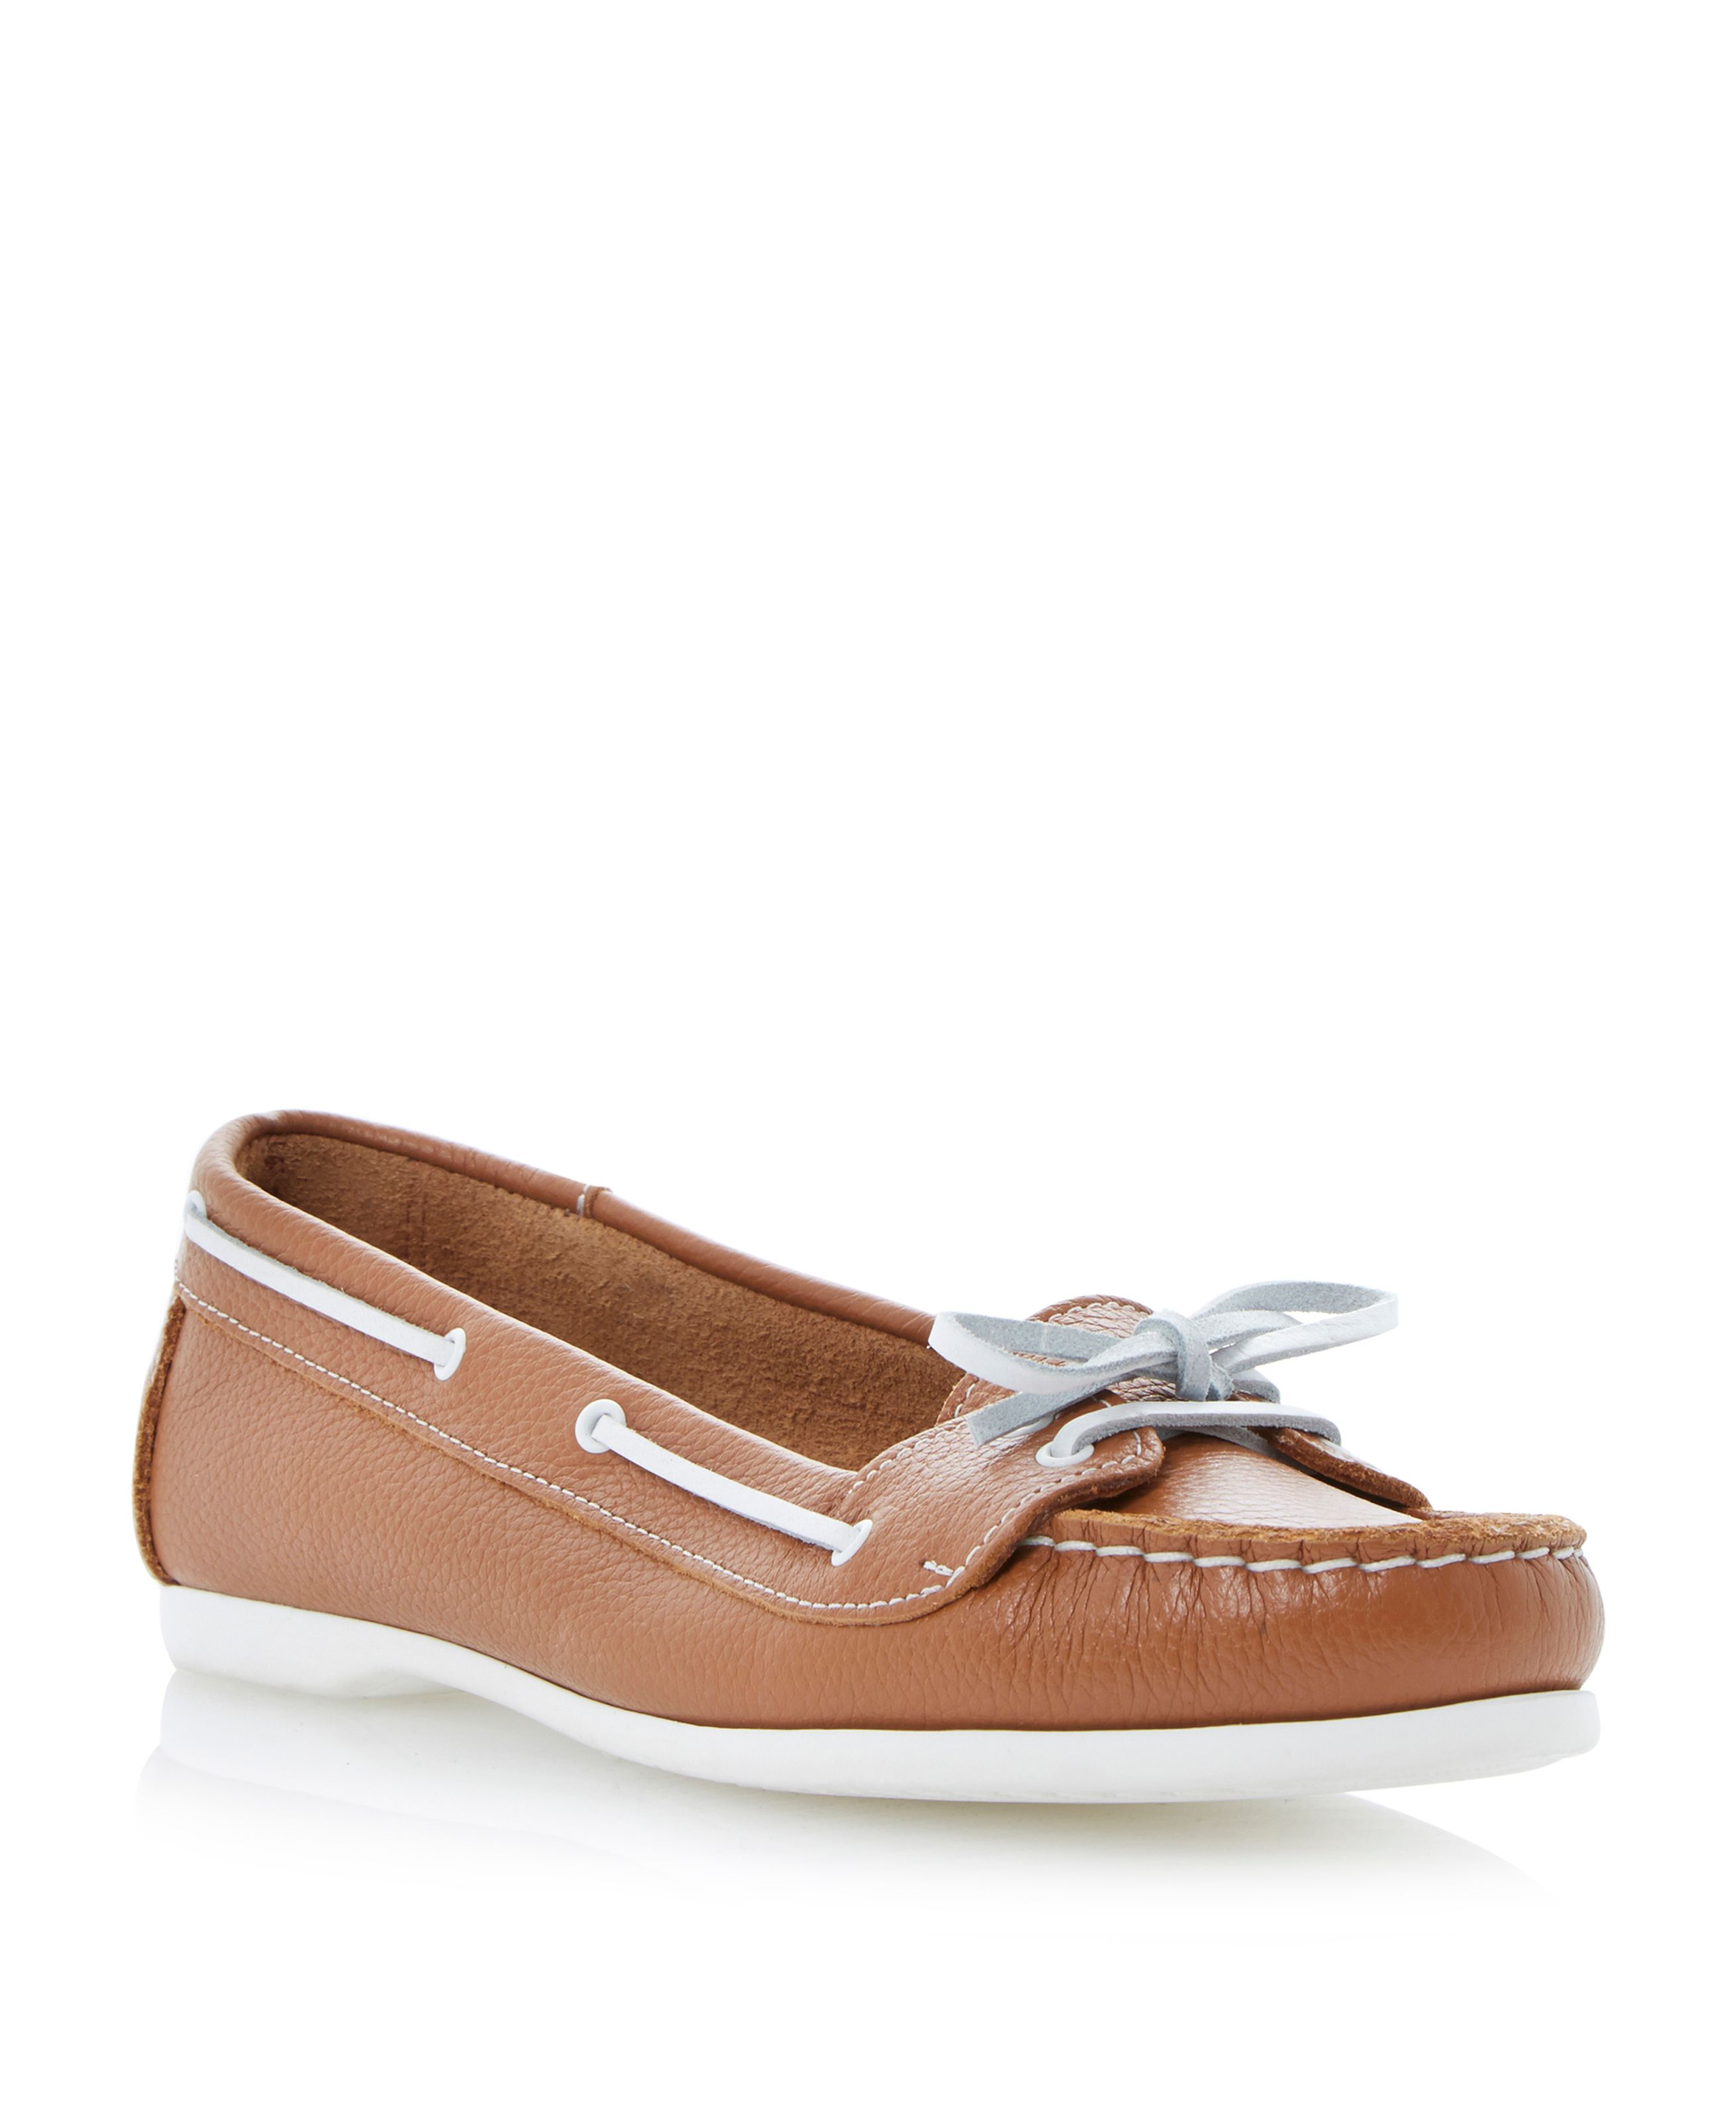 Lester leather round toe flat shoes